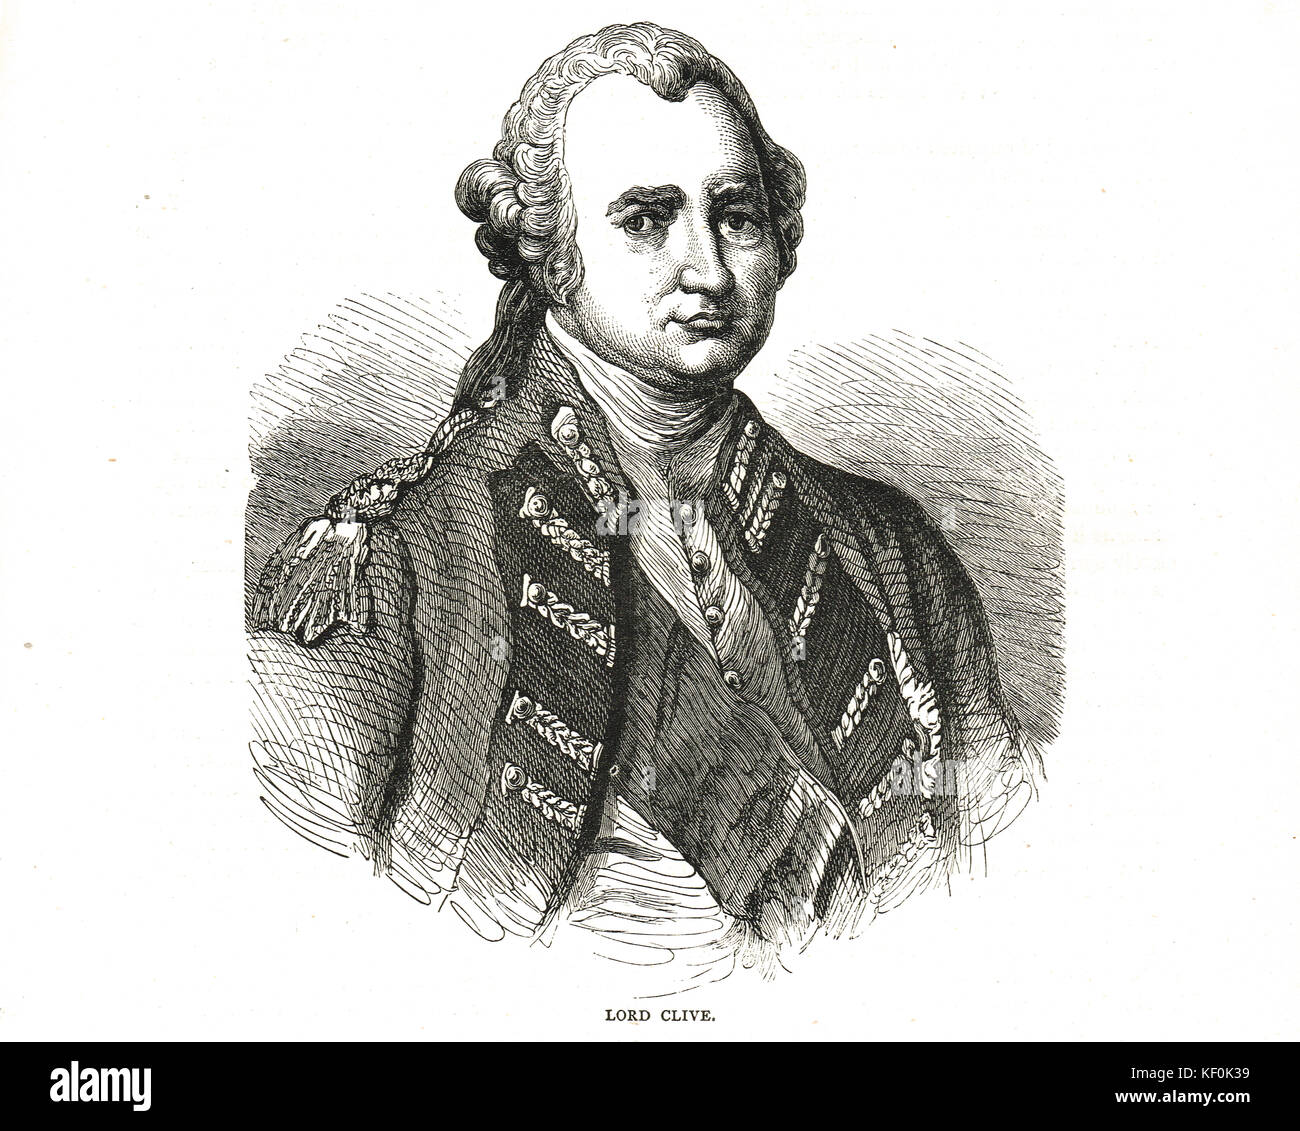 Clive of India, Major-General Robert Clive, 1st Baron Clive, KB, FRS, 1725–1774 - Stock Image